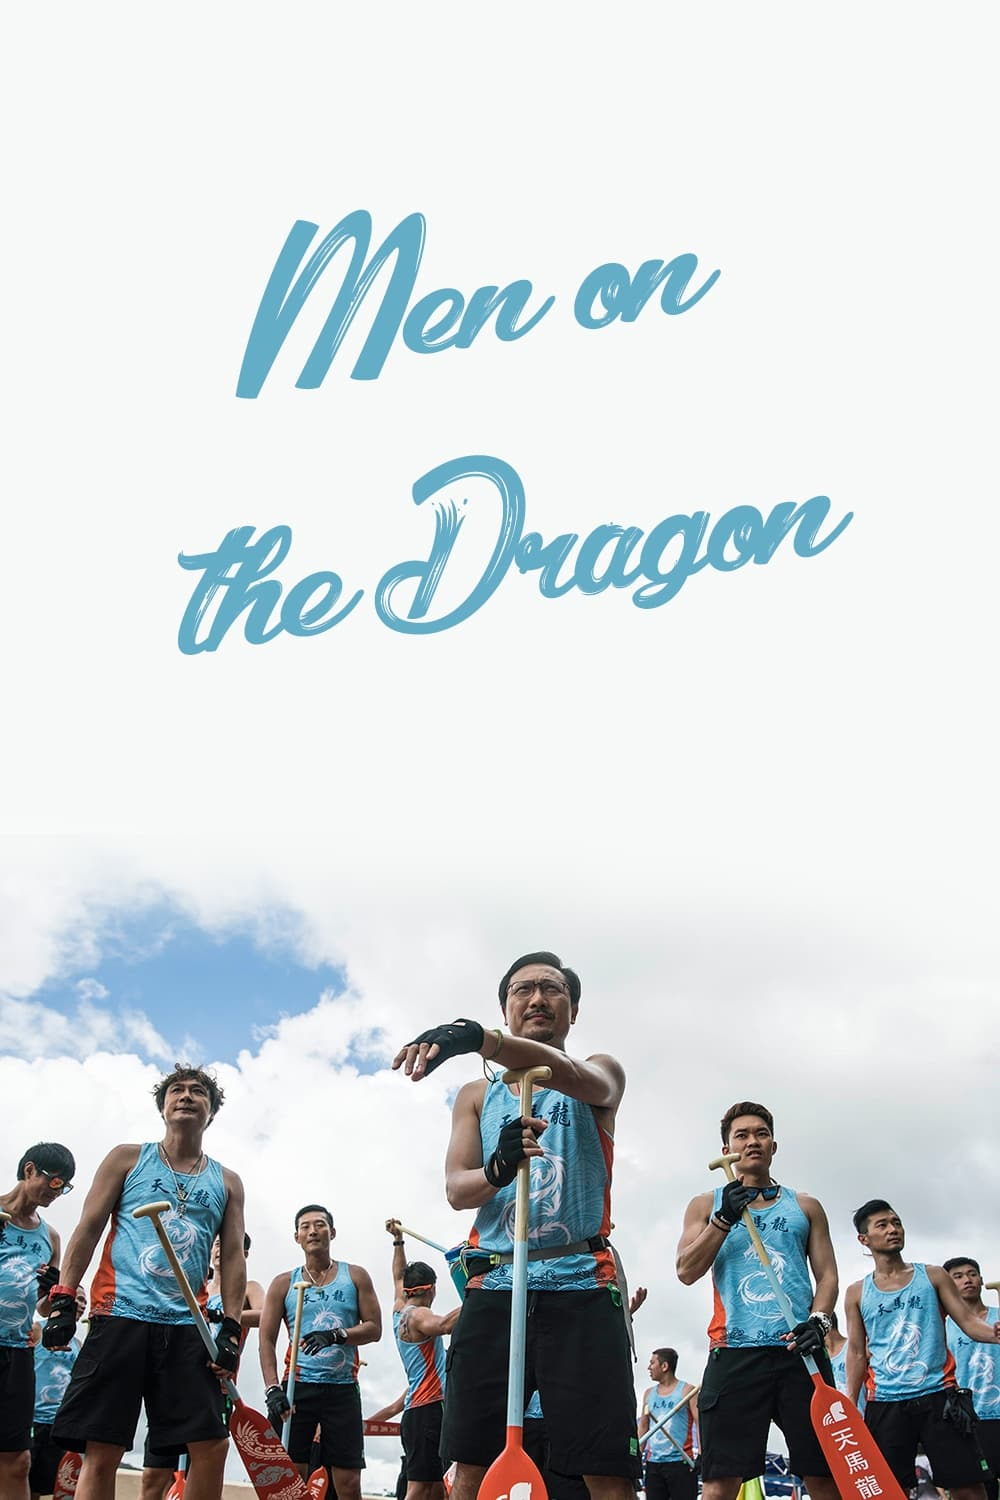 Men on the Dragon (2018)